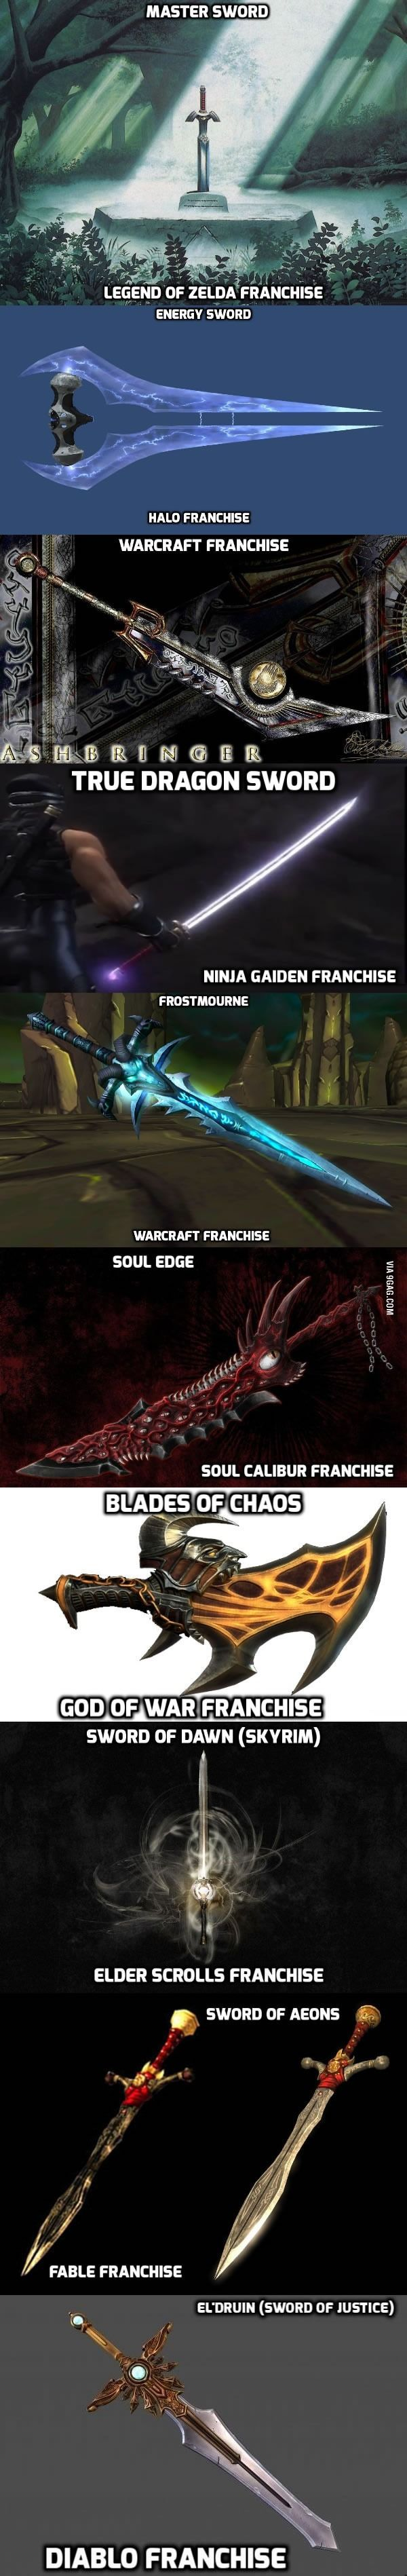 Which sword would you choose to own? (If they were real)